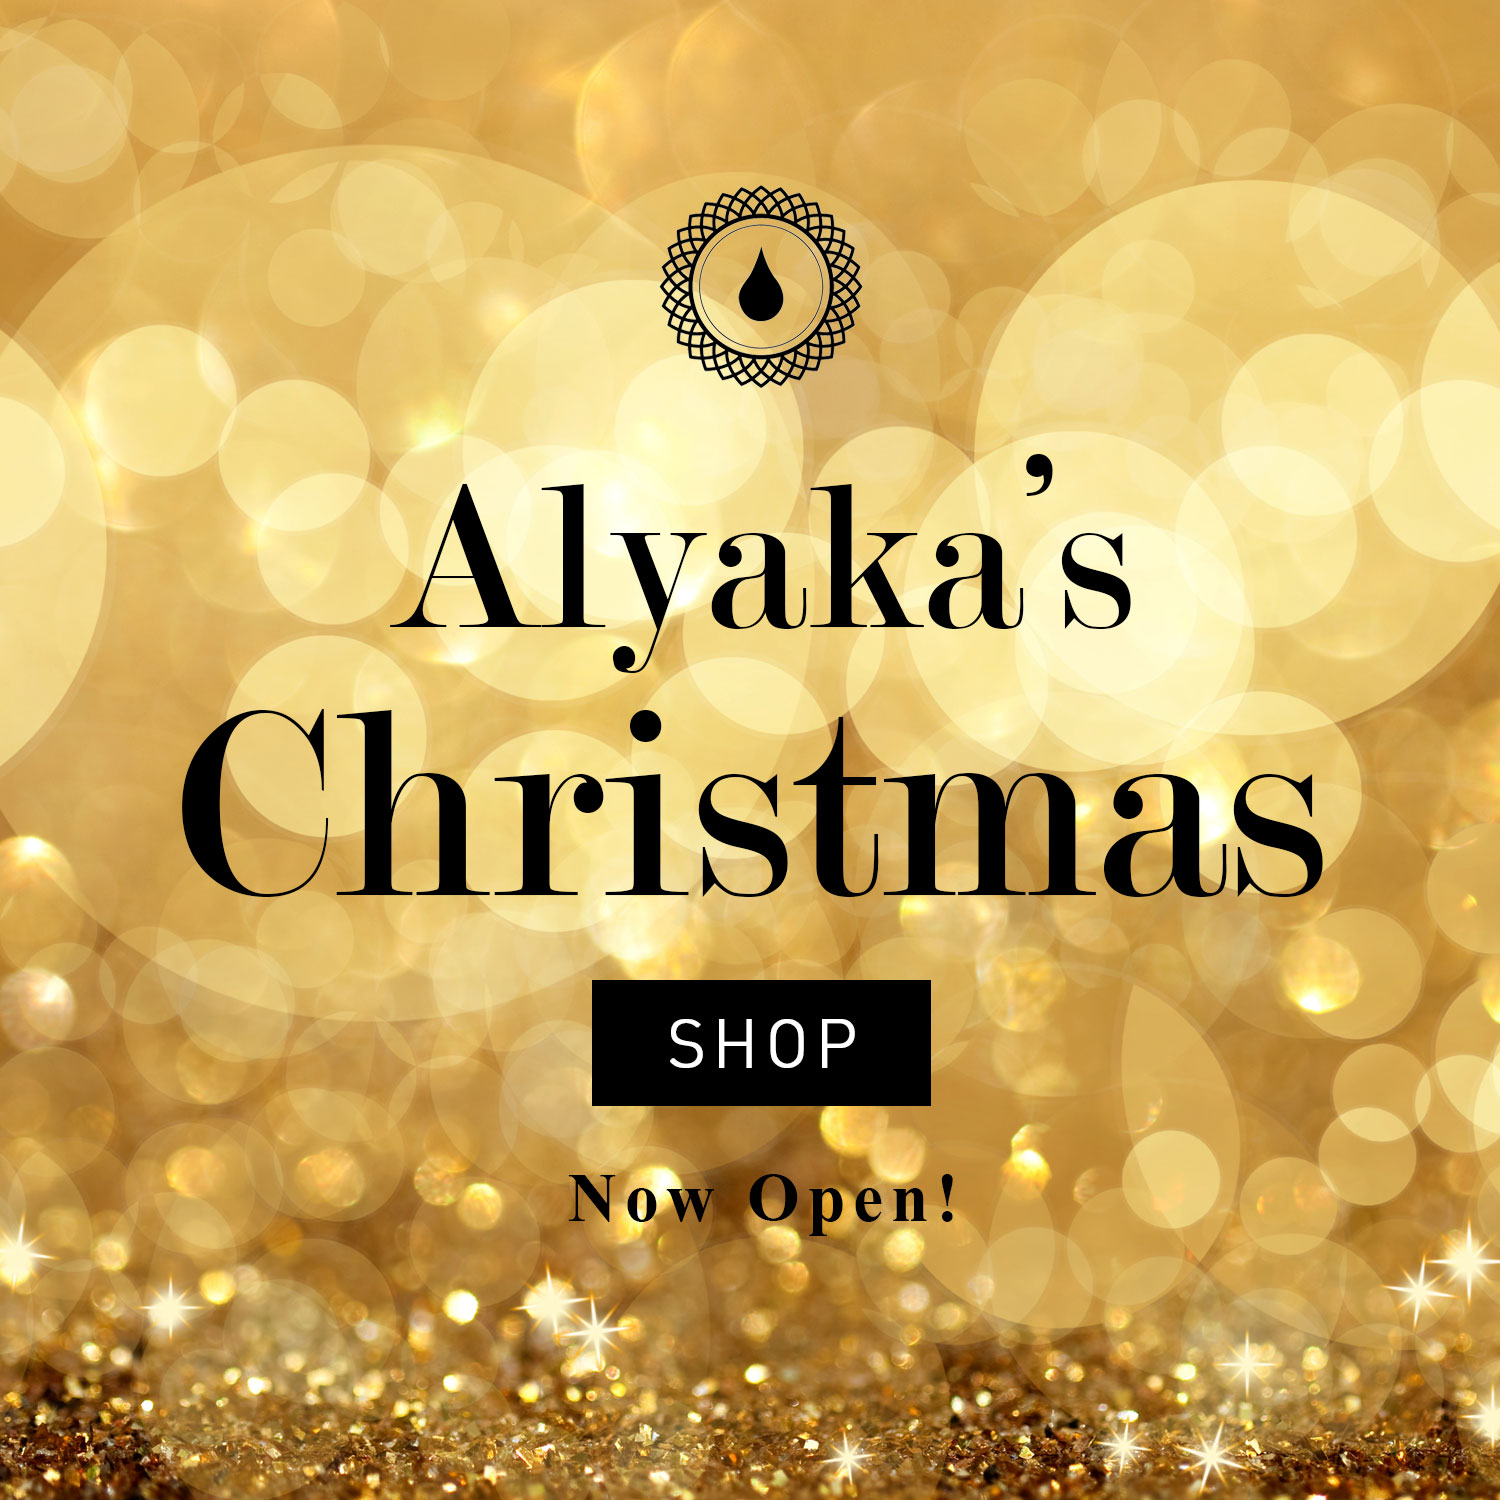 Alyaka's Christmas Shop is Now Open!